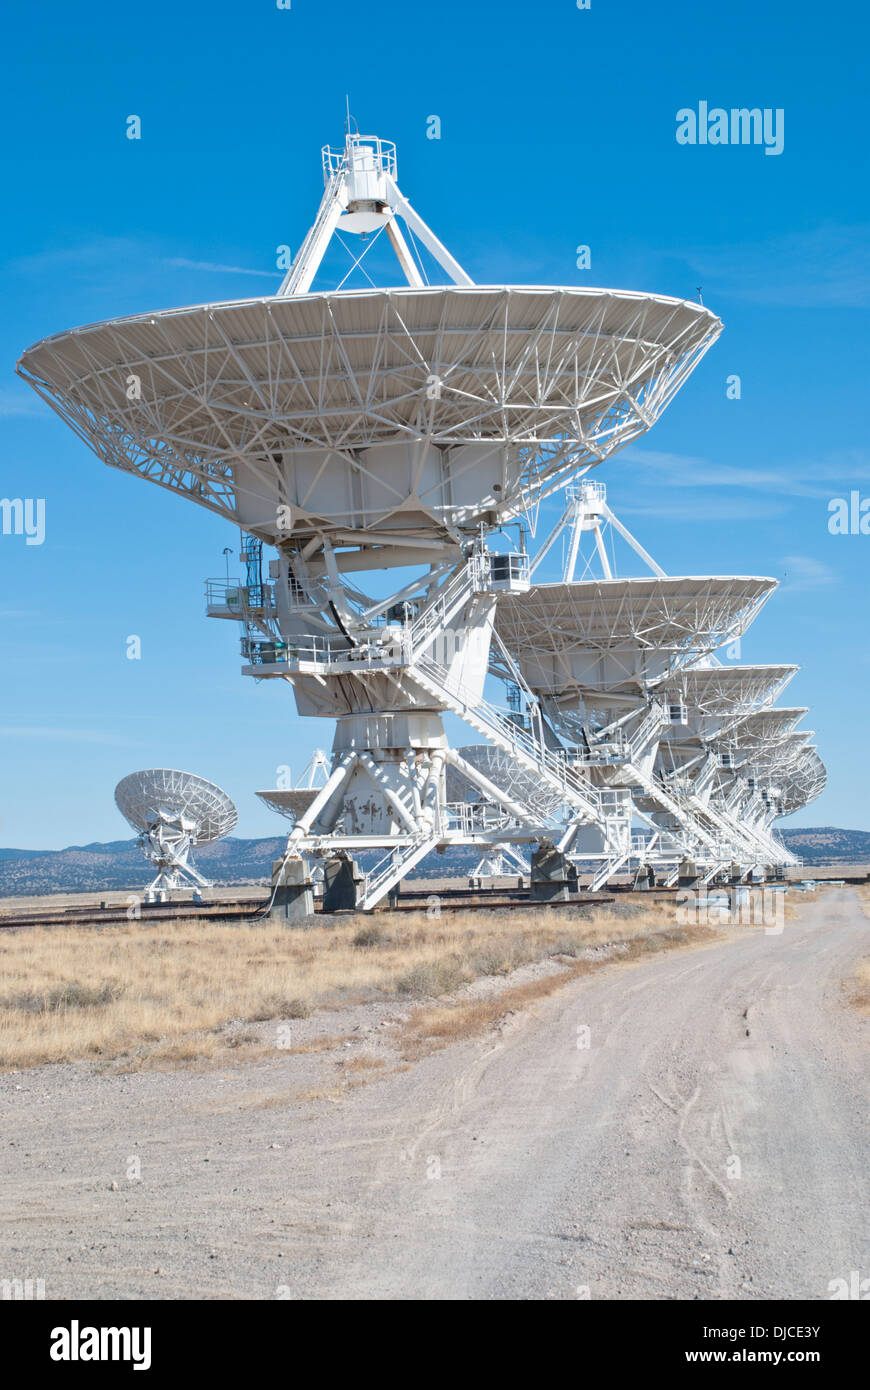 The massive radio telescopes at the Very Large Array  stand in stark contrast to the blue New Mexico sky. Stock Photo